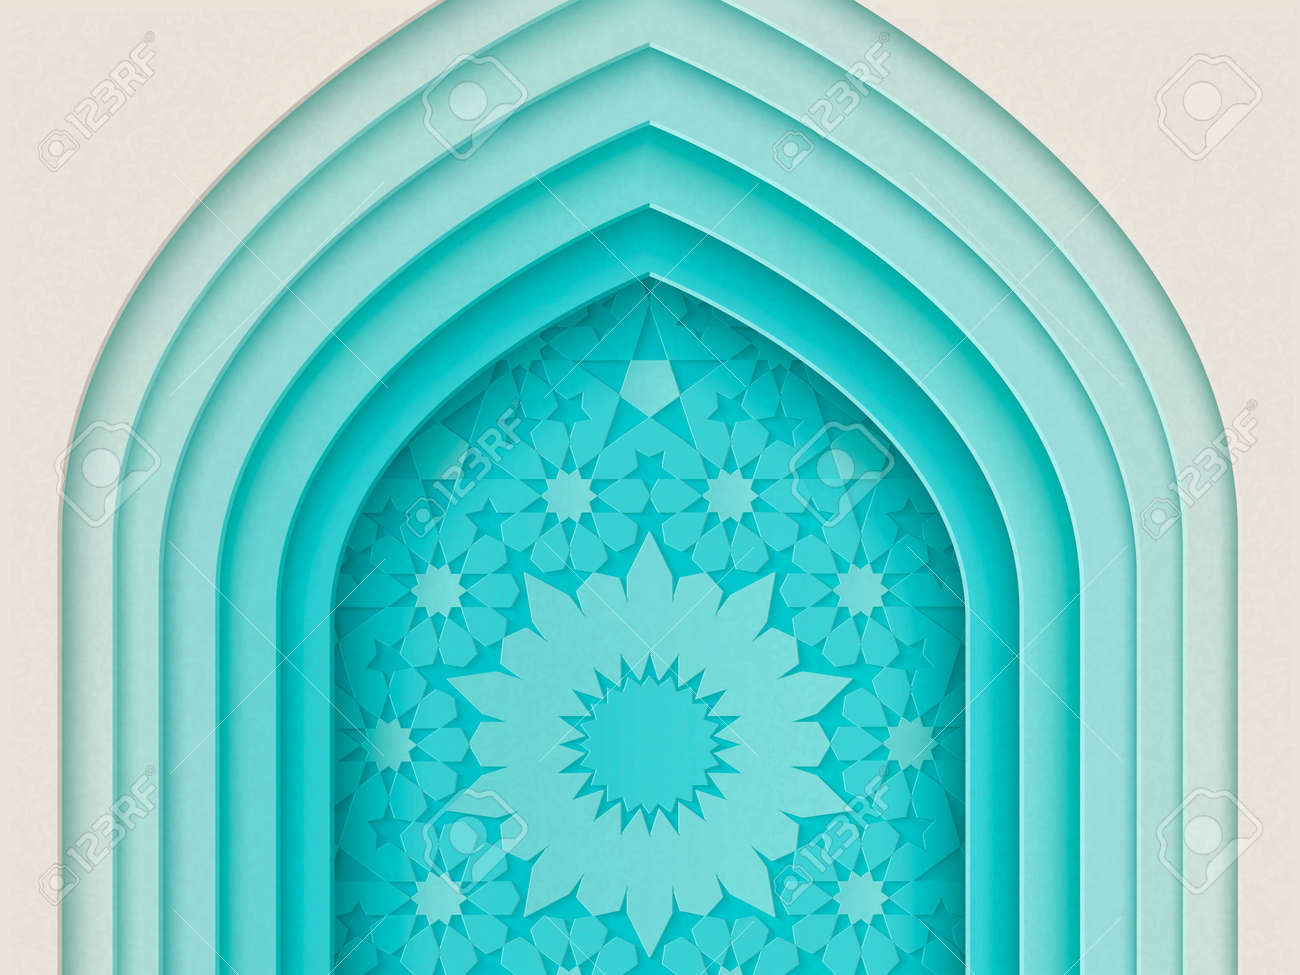 Islamic festival design with multi layers arch background in paper style, 3d illustration - 106121965